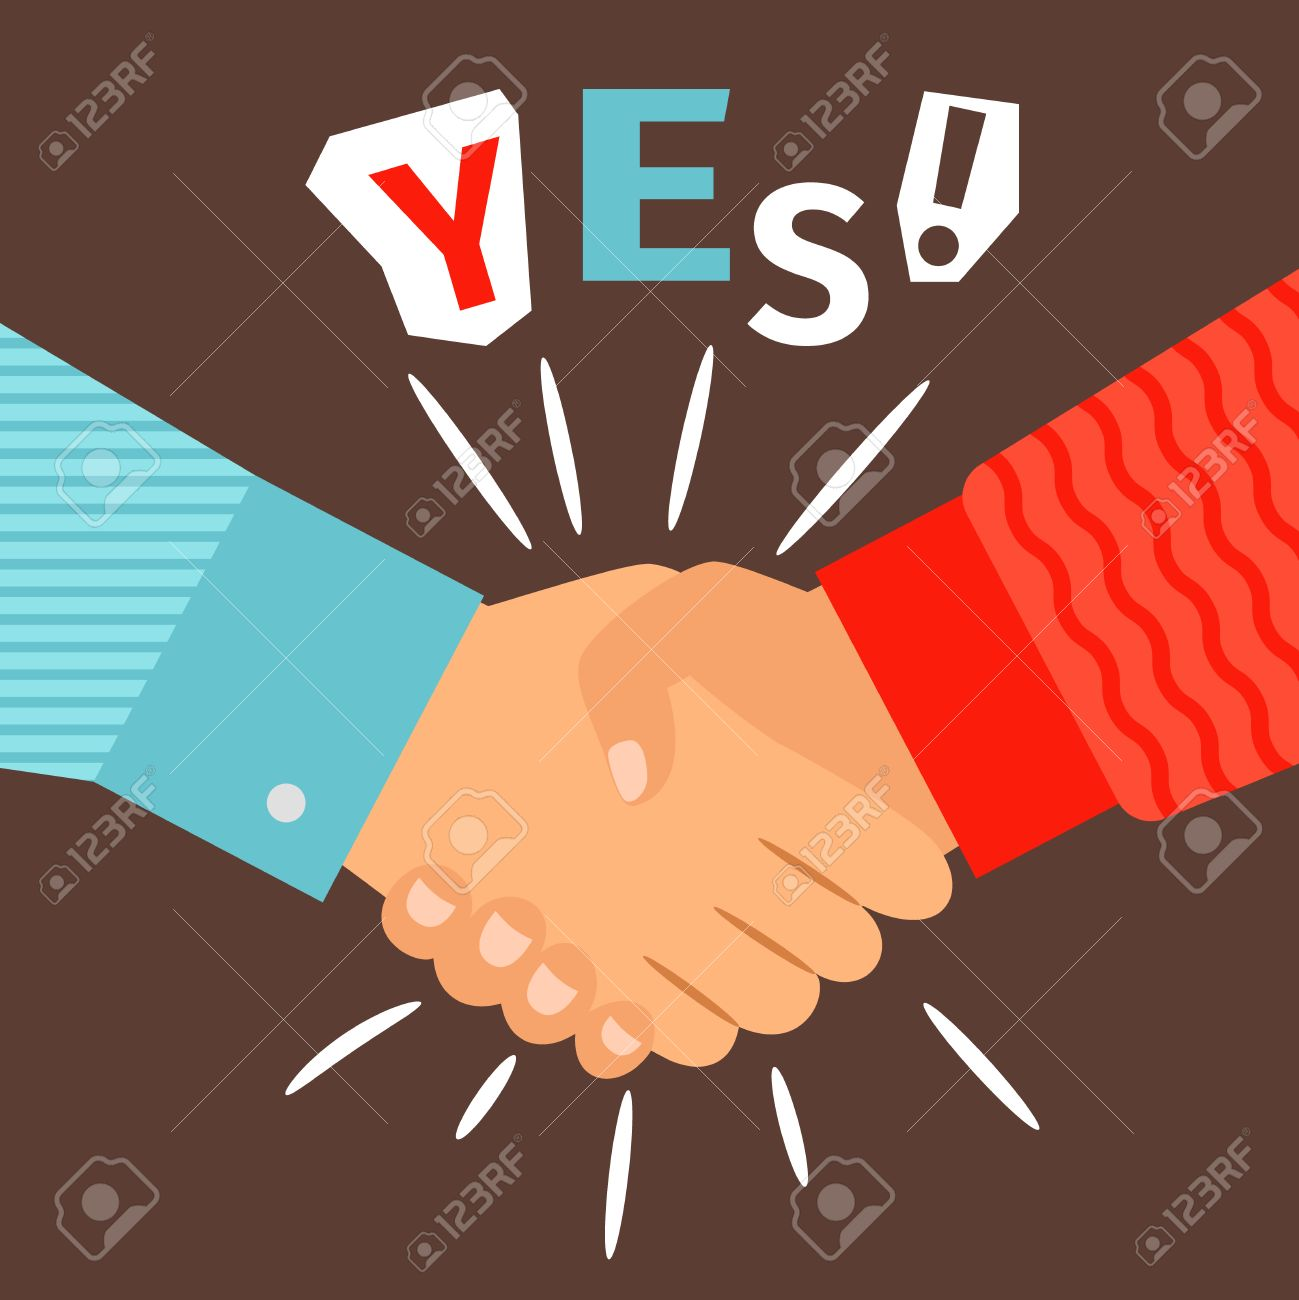 Handshake diverse casual hands meeting, welcome or success shaking sign vector illustration - 81005210